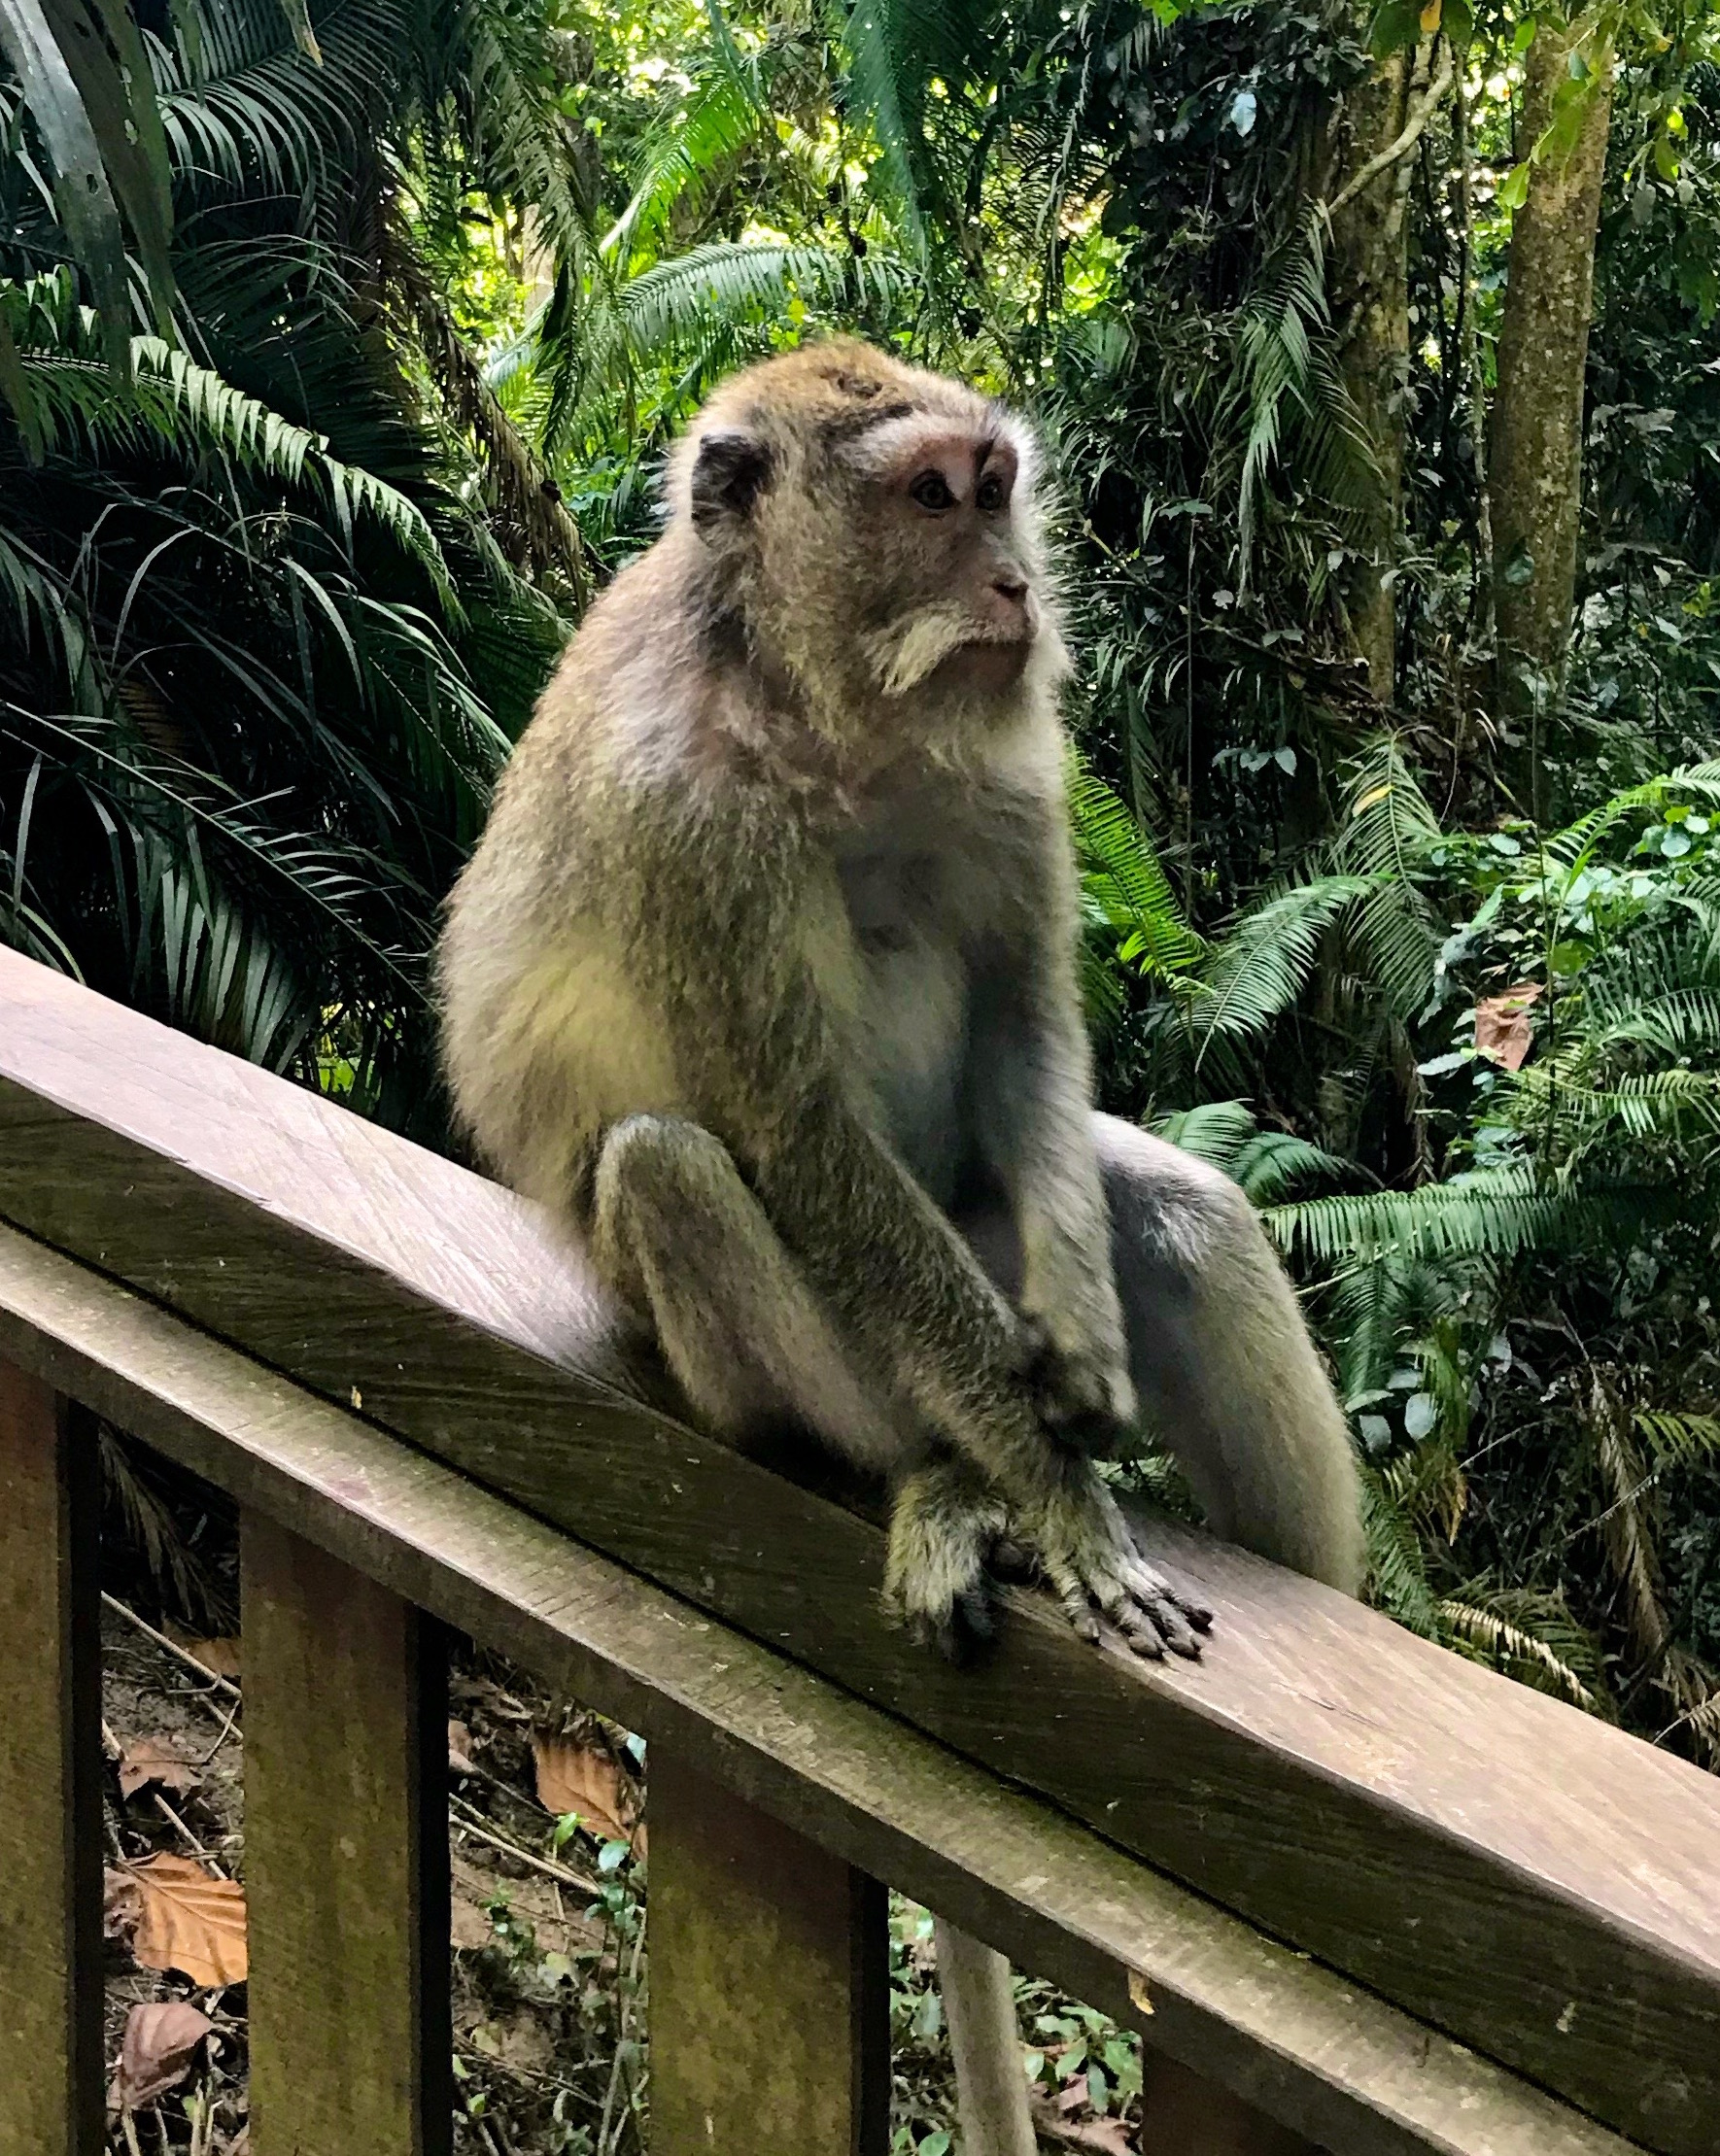 According to the park, there are about 600 monkeys in the area!